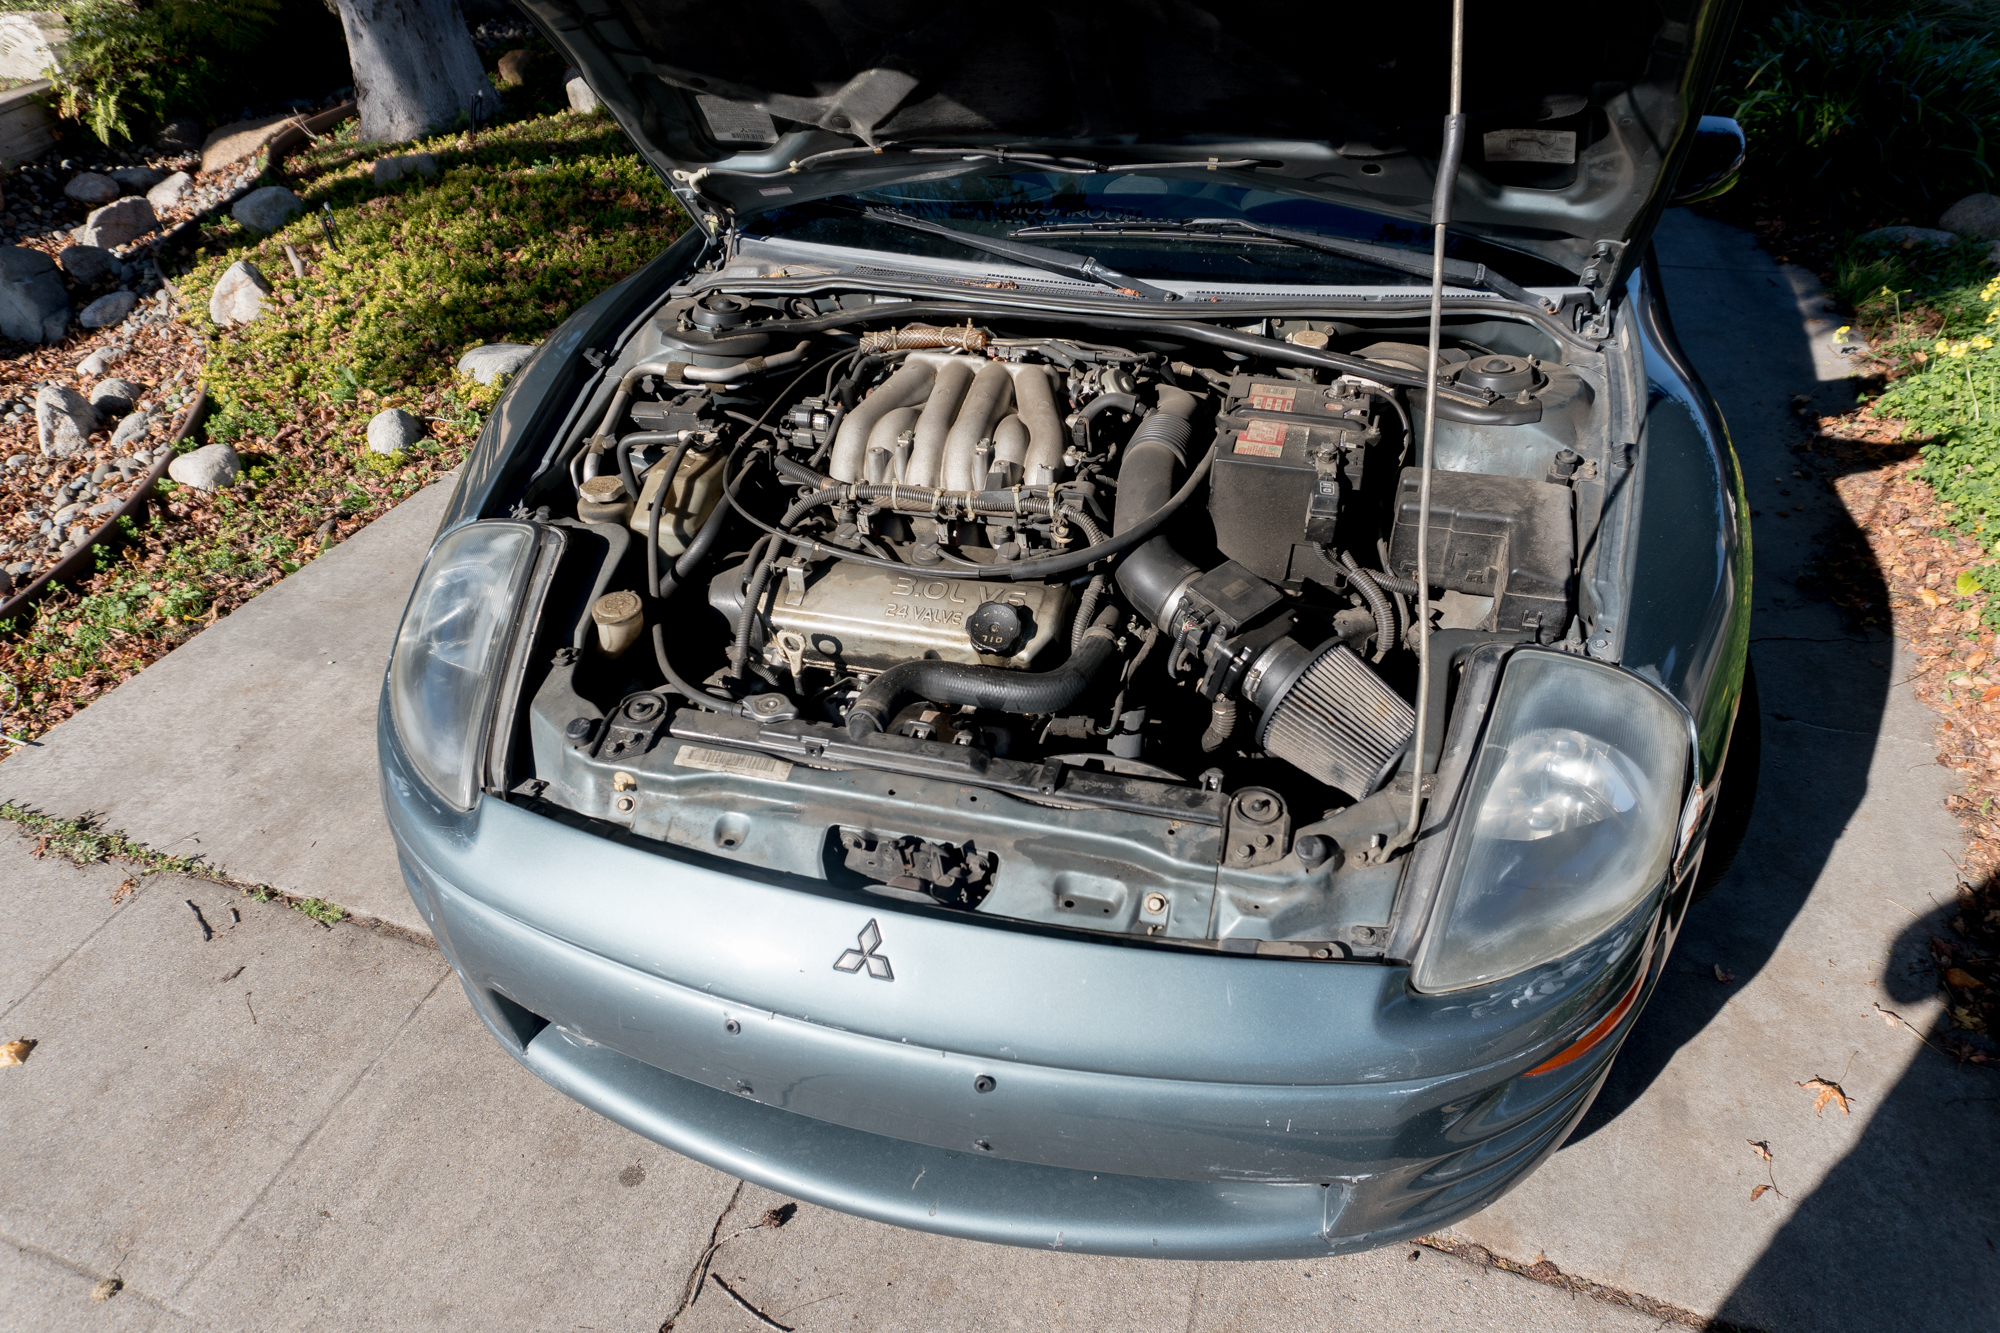 Guest Post: A Few Quick Words on Owning a 3rd Gen Mitsubishi Eclipse GT